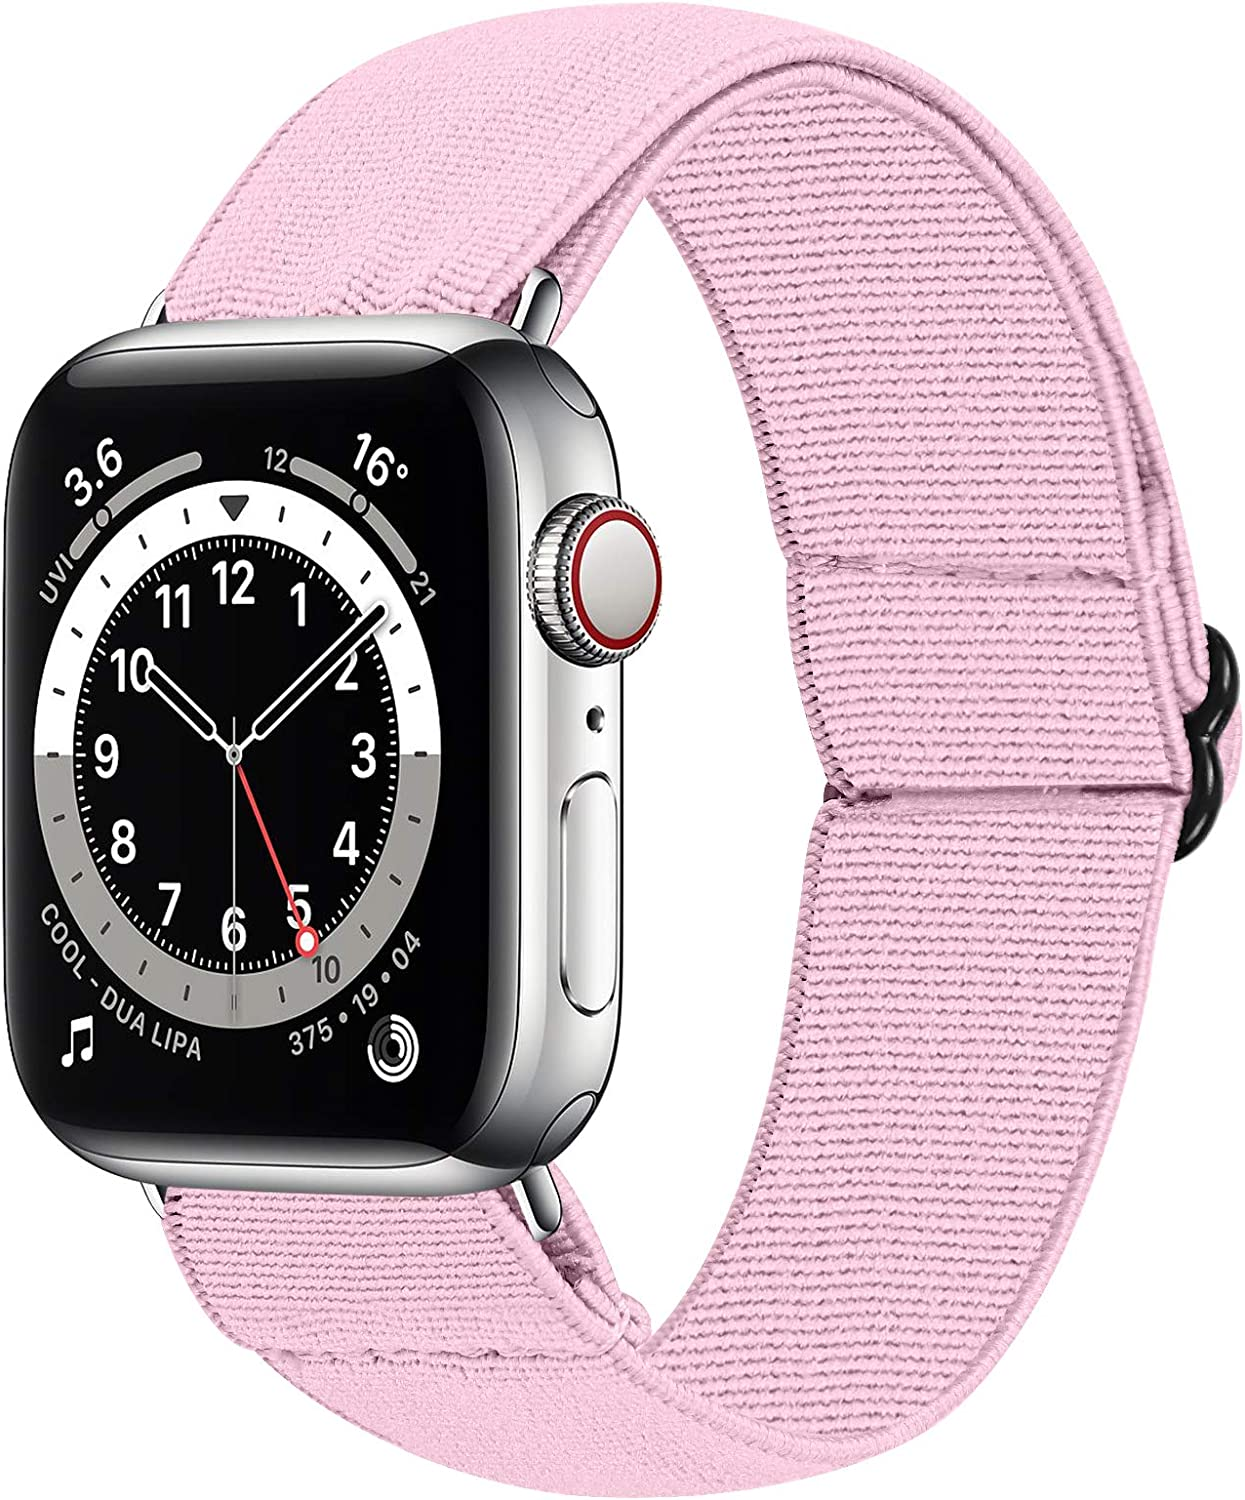 HAYUL Stretchy Nylon Bands Compatible with Apple Watch Bands 38mm 40mm 42mm 44mm, Adjustable Sport Elastics Women Men Wristband for iWatch Series 6/5/4/3/2/1 SE (Light Pink, 38/40mm)